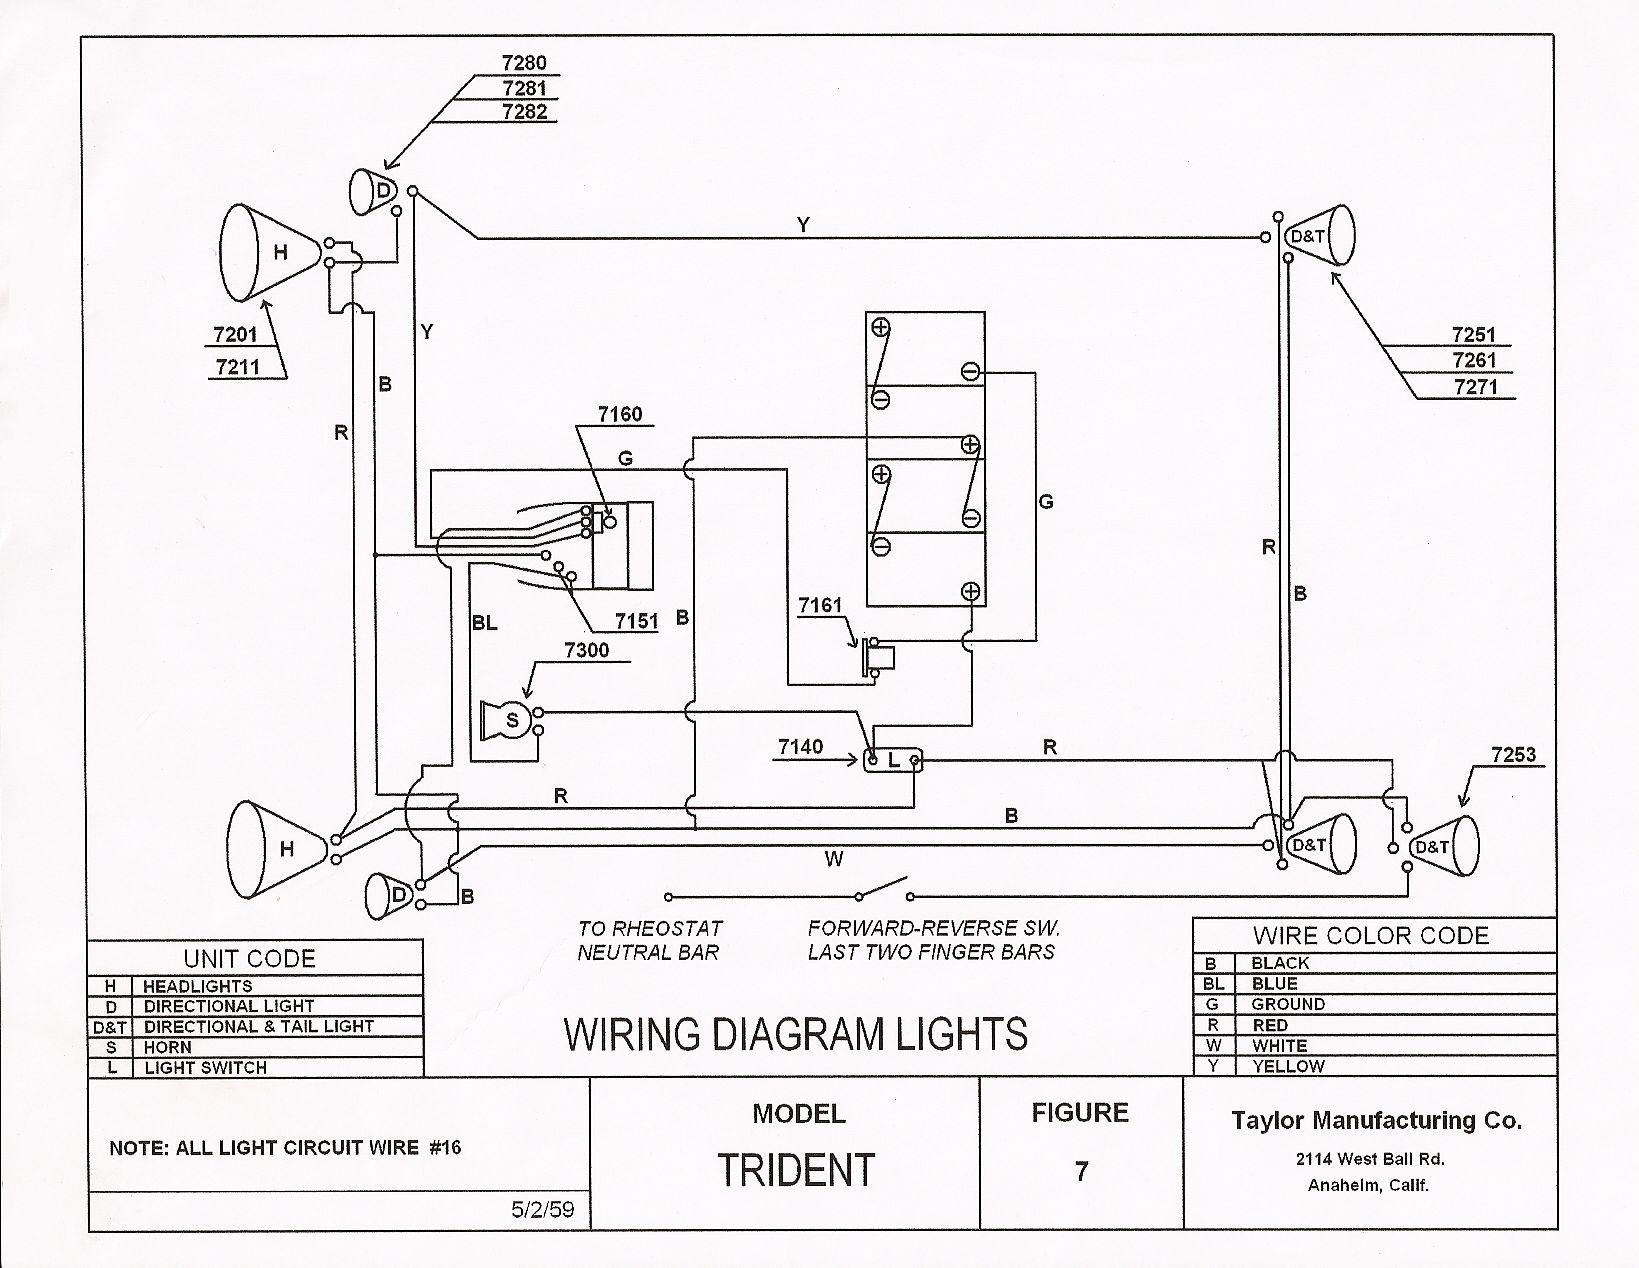 dunn b2 48 wiring diagram dunn b2 48 service manual wiring diagram database